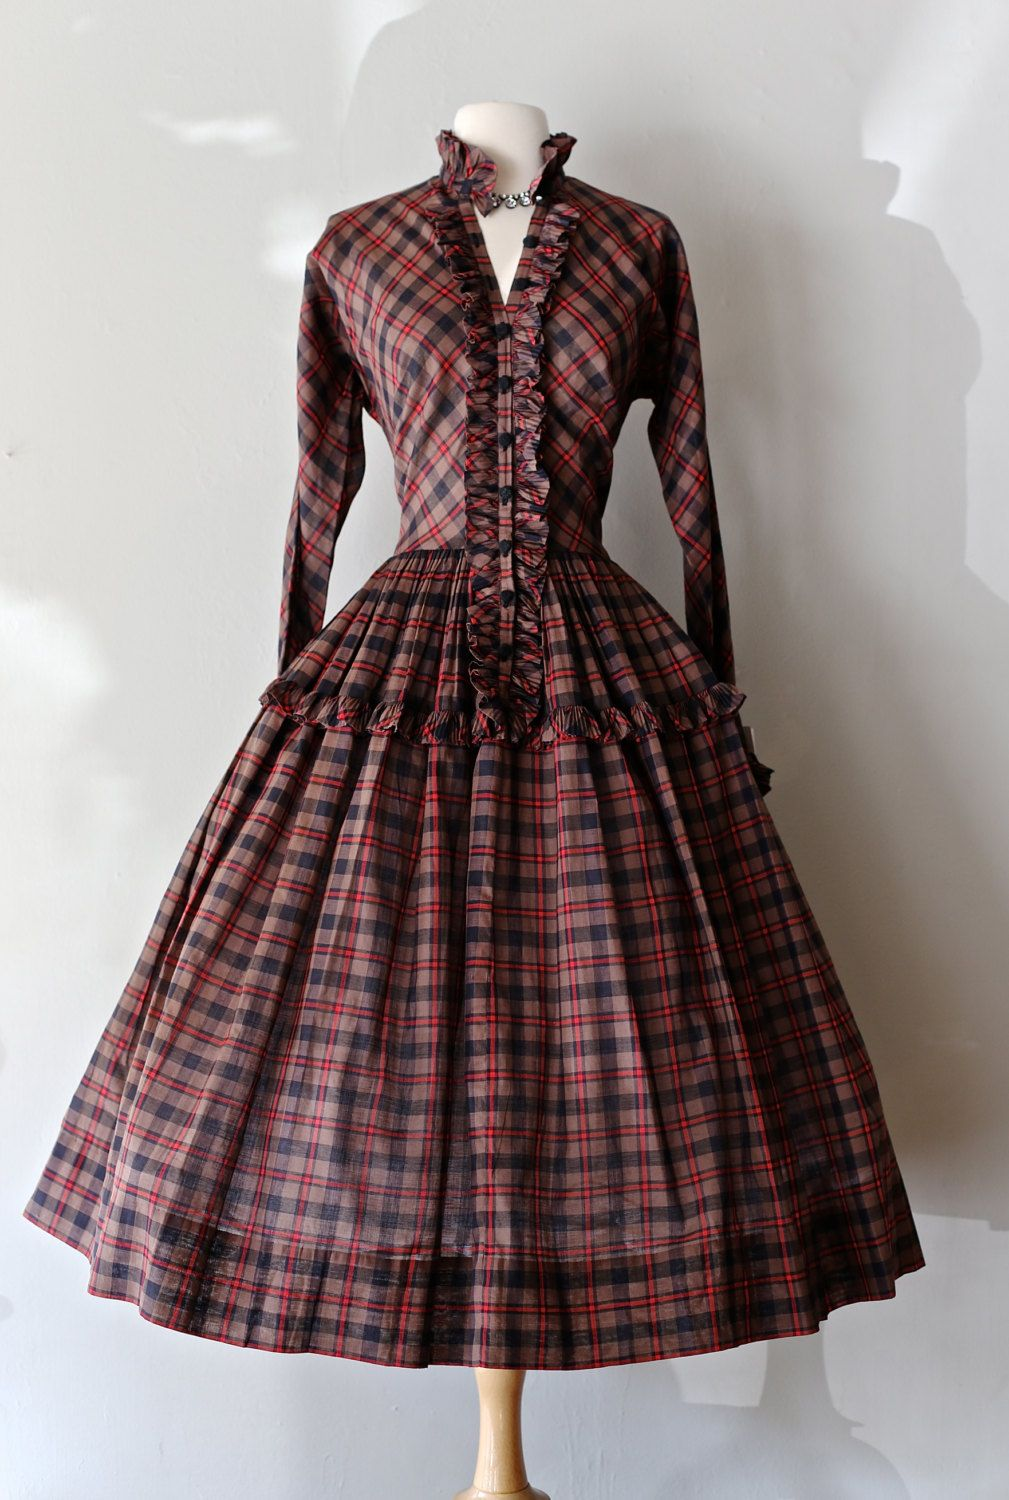 3cec4d1c90 Rare 1950s Claire McCardell Dress ~ Vintage 50s Plaid Dress With ...